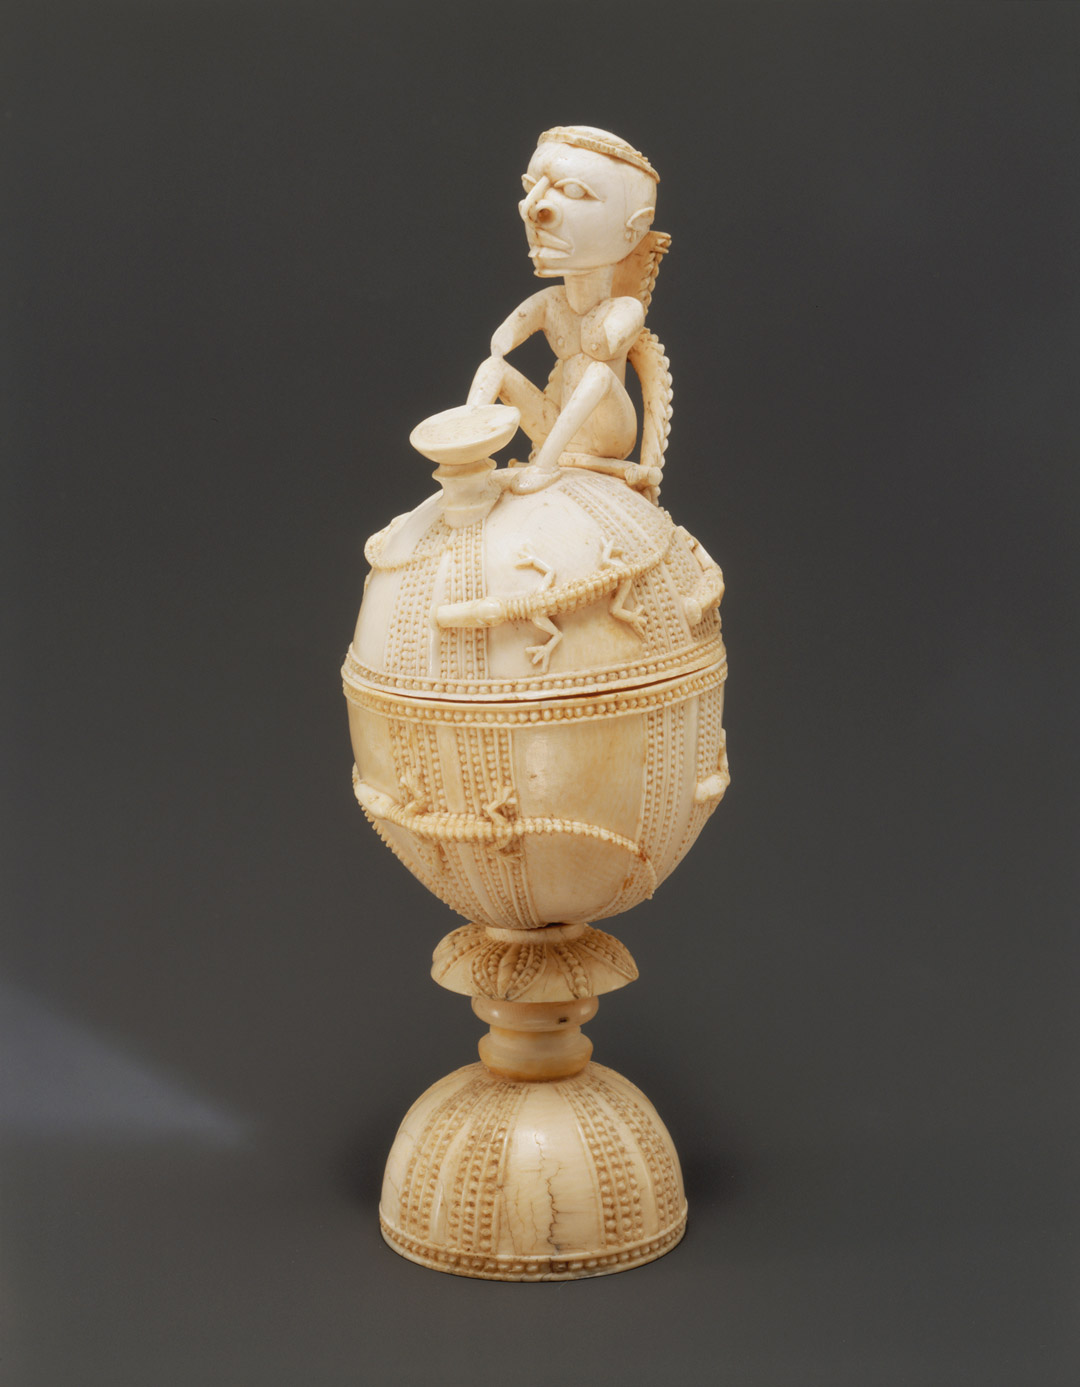 A photograph of a intricately carved salt cellar with a figure sitting on top of a round shape with a crocodile motif wrapping around the base.